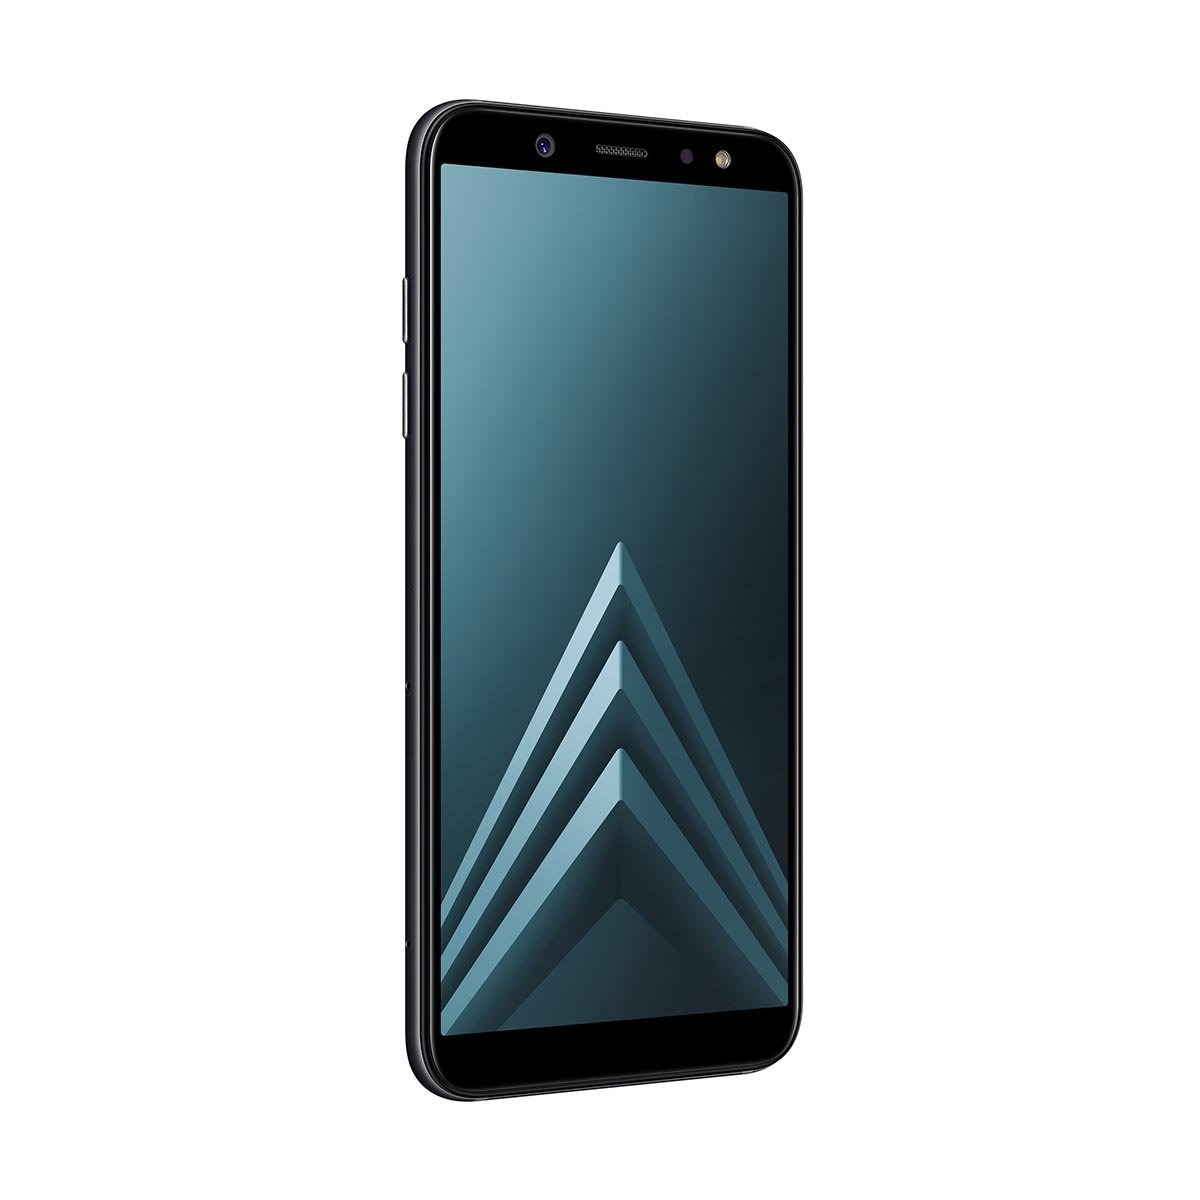 Samsung Galaxy A6 - Smartphone libre Android 8,0 (5,6 HD+), Dual ...